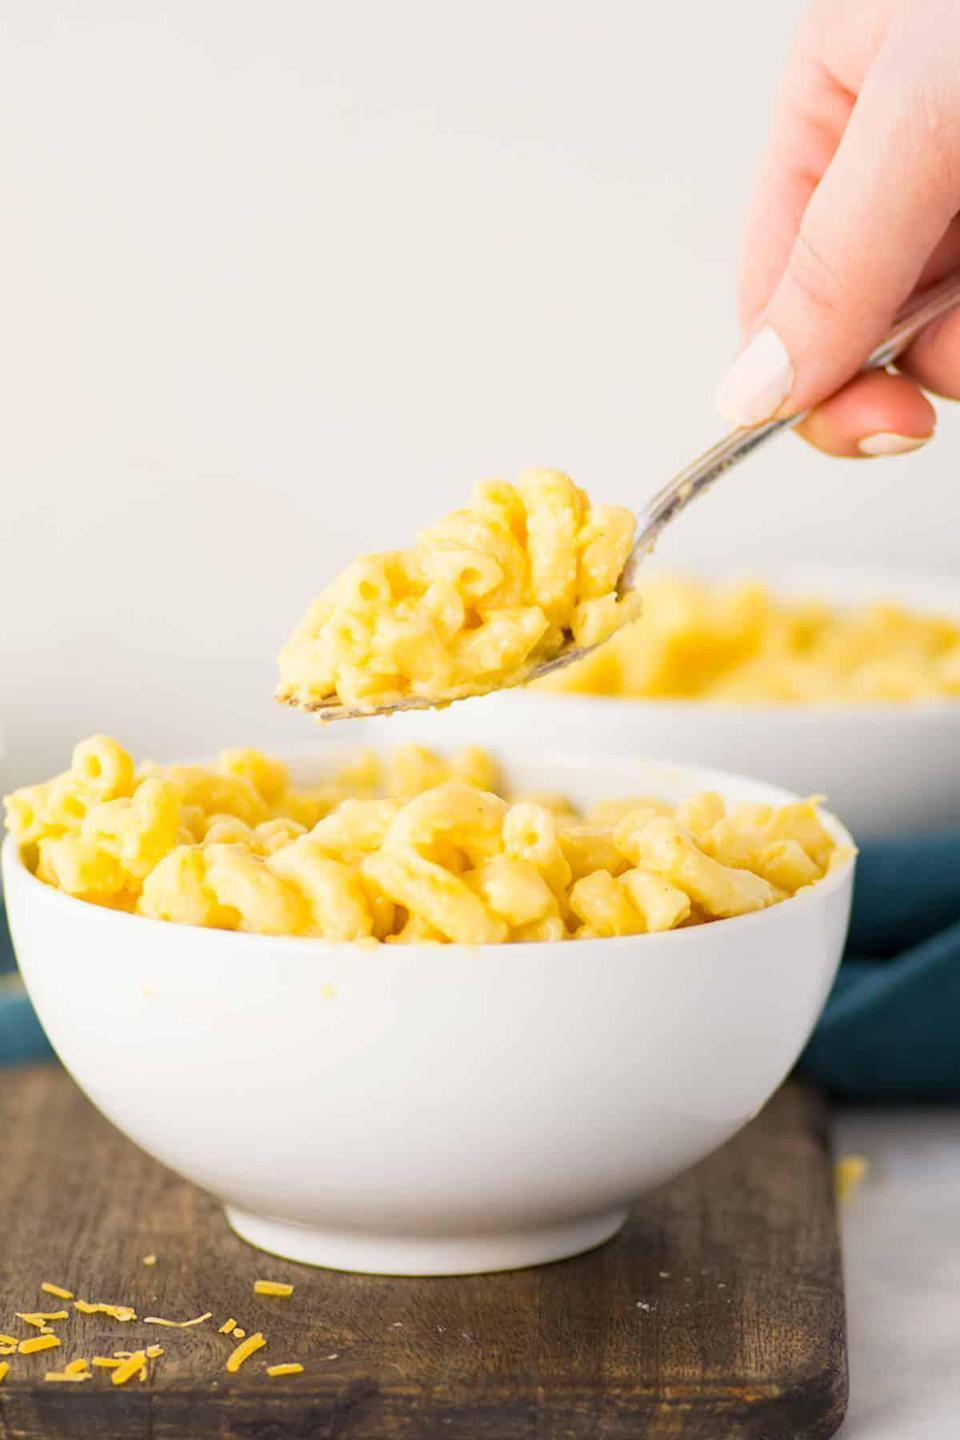 "<p>Everyone loves mac and cheese, but no one loves when the sauce dries out before it's time to eat. This tried-and-true recipe for the ""creamiest, cheesiest"" mac and cheese solves that problem once and for all. The trick? The combination of sharp cheddar and colby jack, a generous pour of heavy cream and chicken broth in the sauce. Now all you have to do is add some <a href=""http://www.thedailymeal.com/cook/unexpected-mac-and-cheese-additions?referrer=yahoo&category=beauty_food&include_utm=1&utm_medium=referral&utm_source=yahoo&utm_campaign=feed"" rel=""nofollow noopener"" target=""_blank"" data-ylk=""slk:unexpected ingredients that go great with mac and cheese"" class=""link rapid-noclick-resp"">unexpected ingredients that go great with mac and cheese</a> to make it pop.</p> <p><a href=""https://www.thedailymeal.com/best-recipes/mac-and-cheese-recipe-freezer-homecooked?referrer=yahoo&category=beauty_food&include_utm=1&utm_medium=referral&utm_source=yahoo&utm_campaign=feed"" rel=""nofollow noopener"" target=""_blank"" data-ylk=""slk:For the Mac and Cheese recipe, click here."" class=""link rapid-noclick-resp"">For the Mac and Cheese recipe, click here.</a></p>"